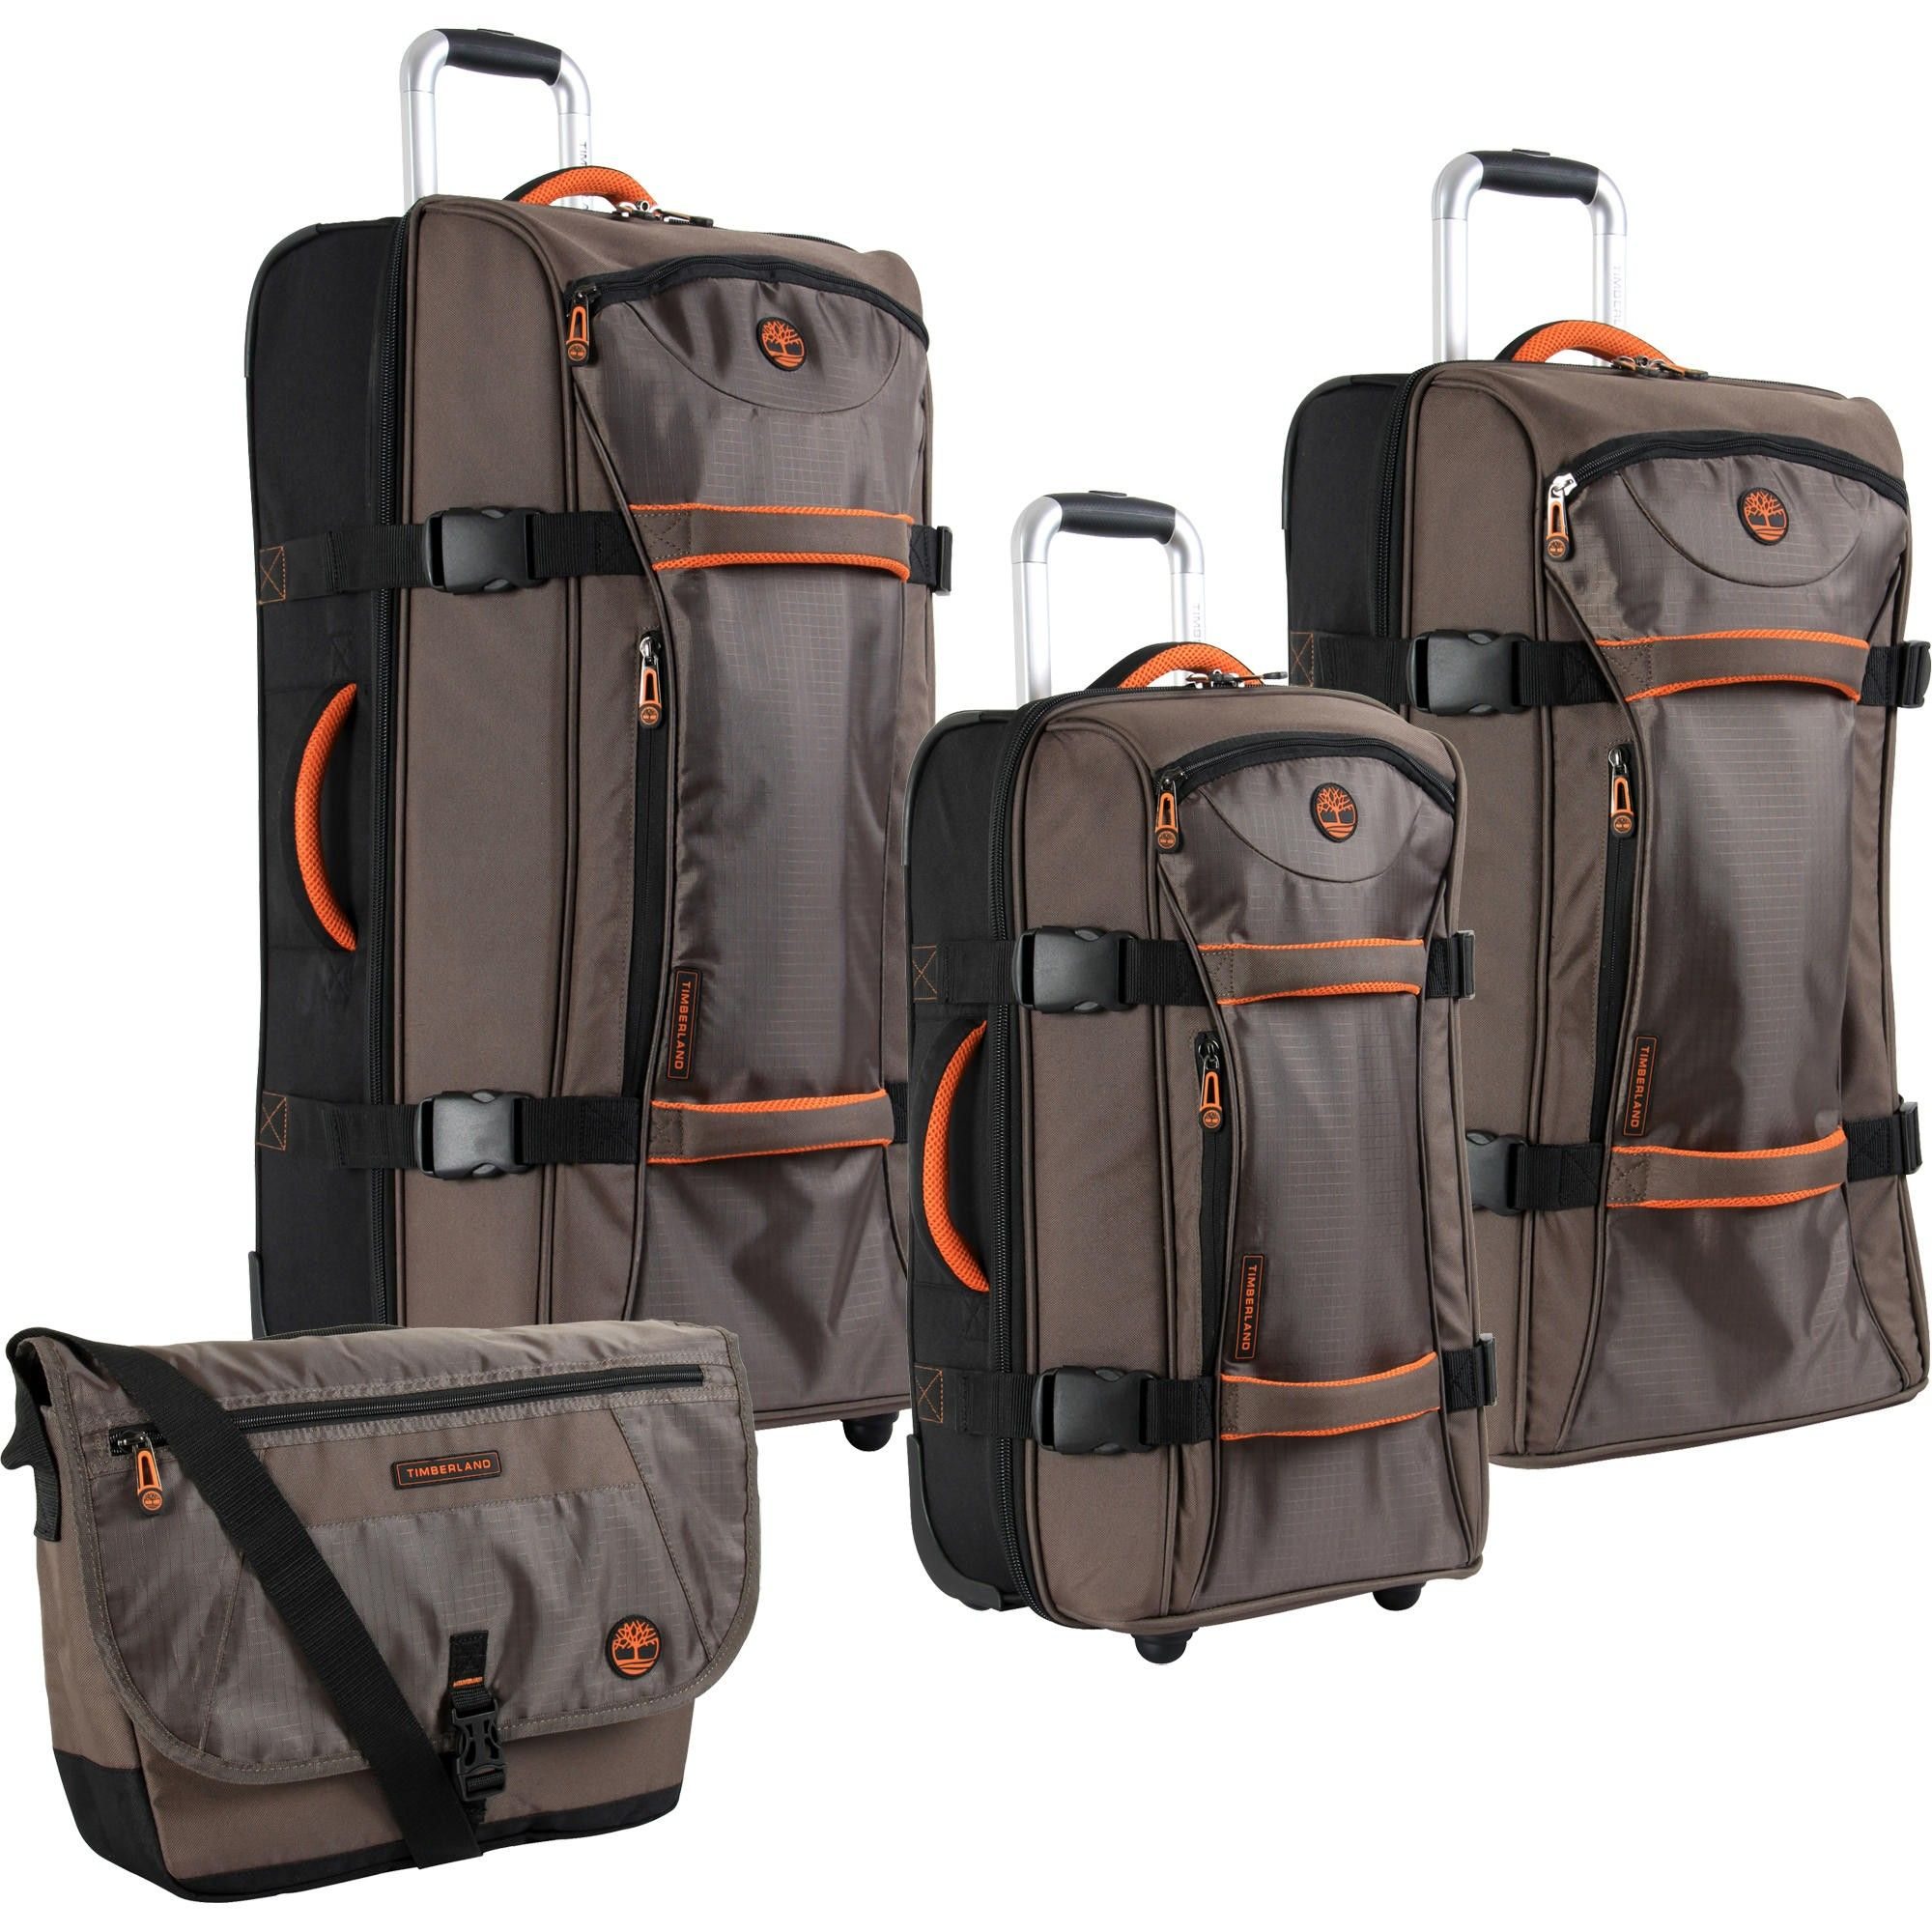 Twin Mountain 4 Piece Luggage Set | Luggage sale, Luggage